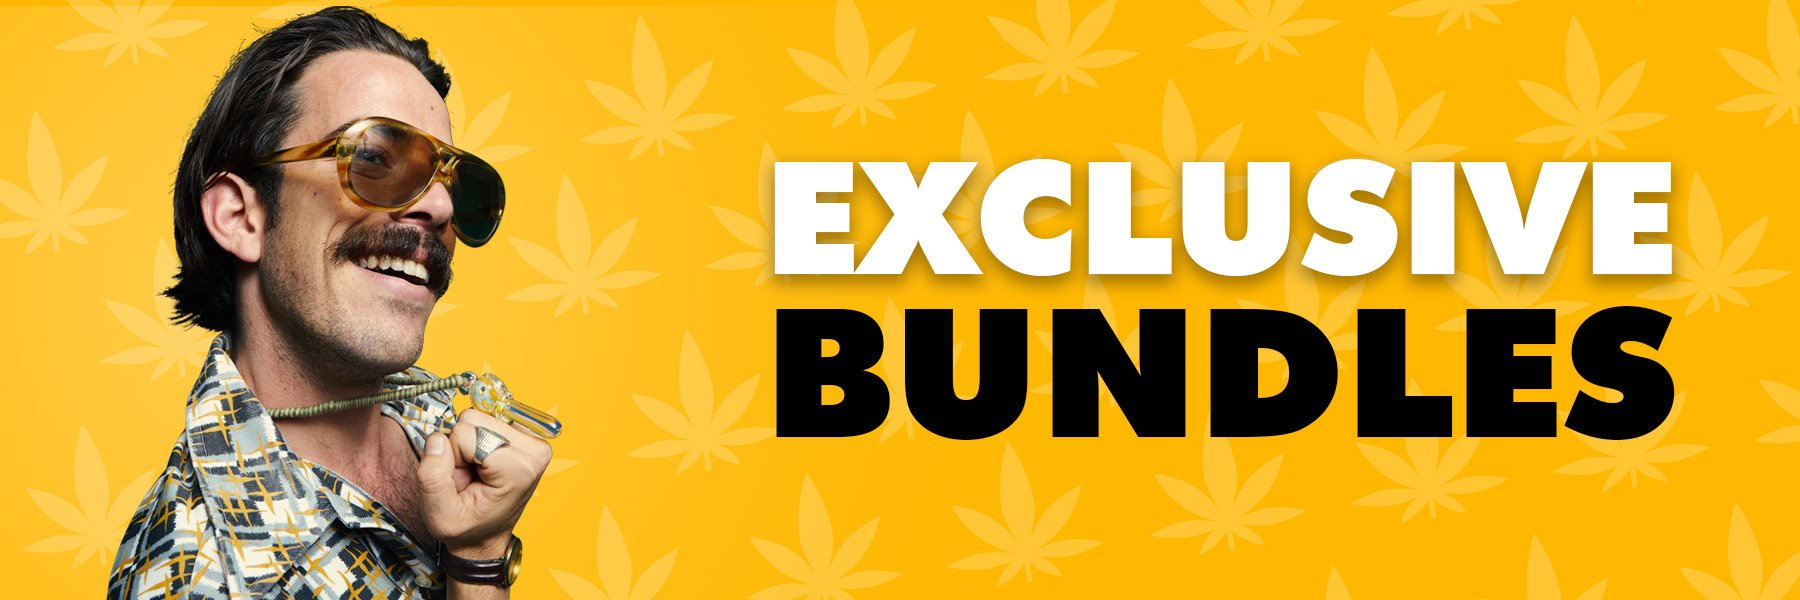 Exclusive Bundles banner featuring man in sunglasses and showing off his pipe bling.